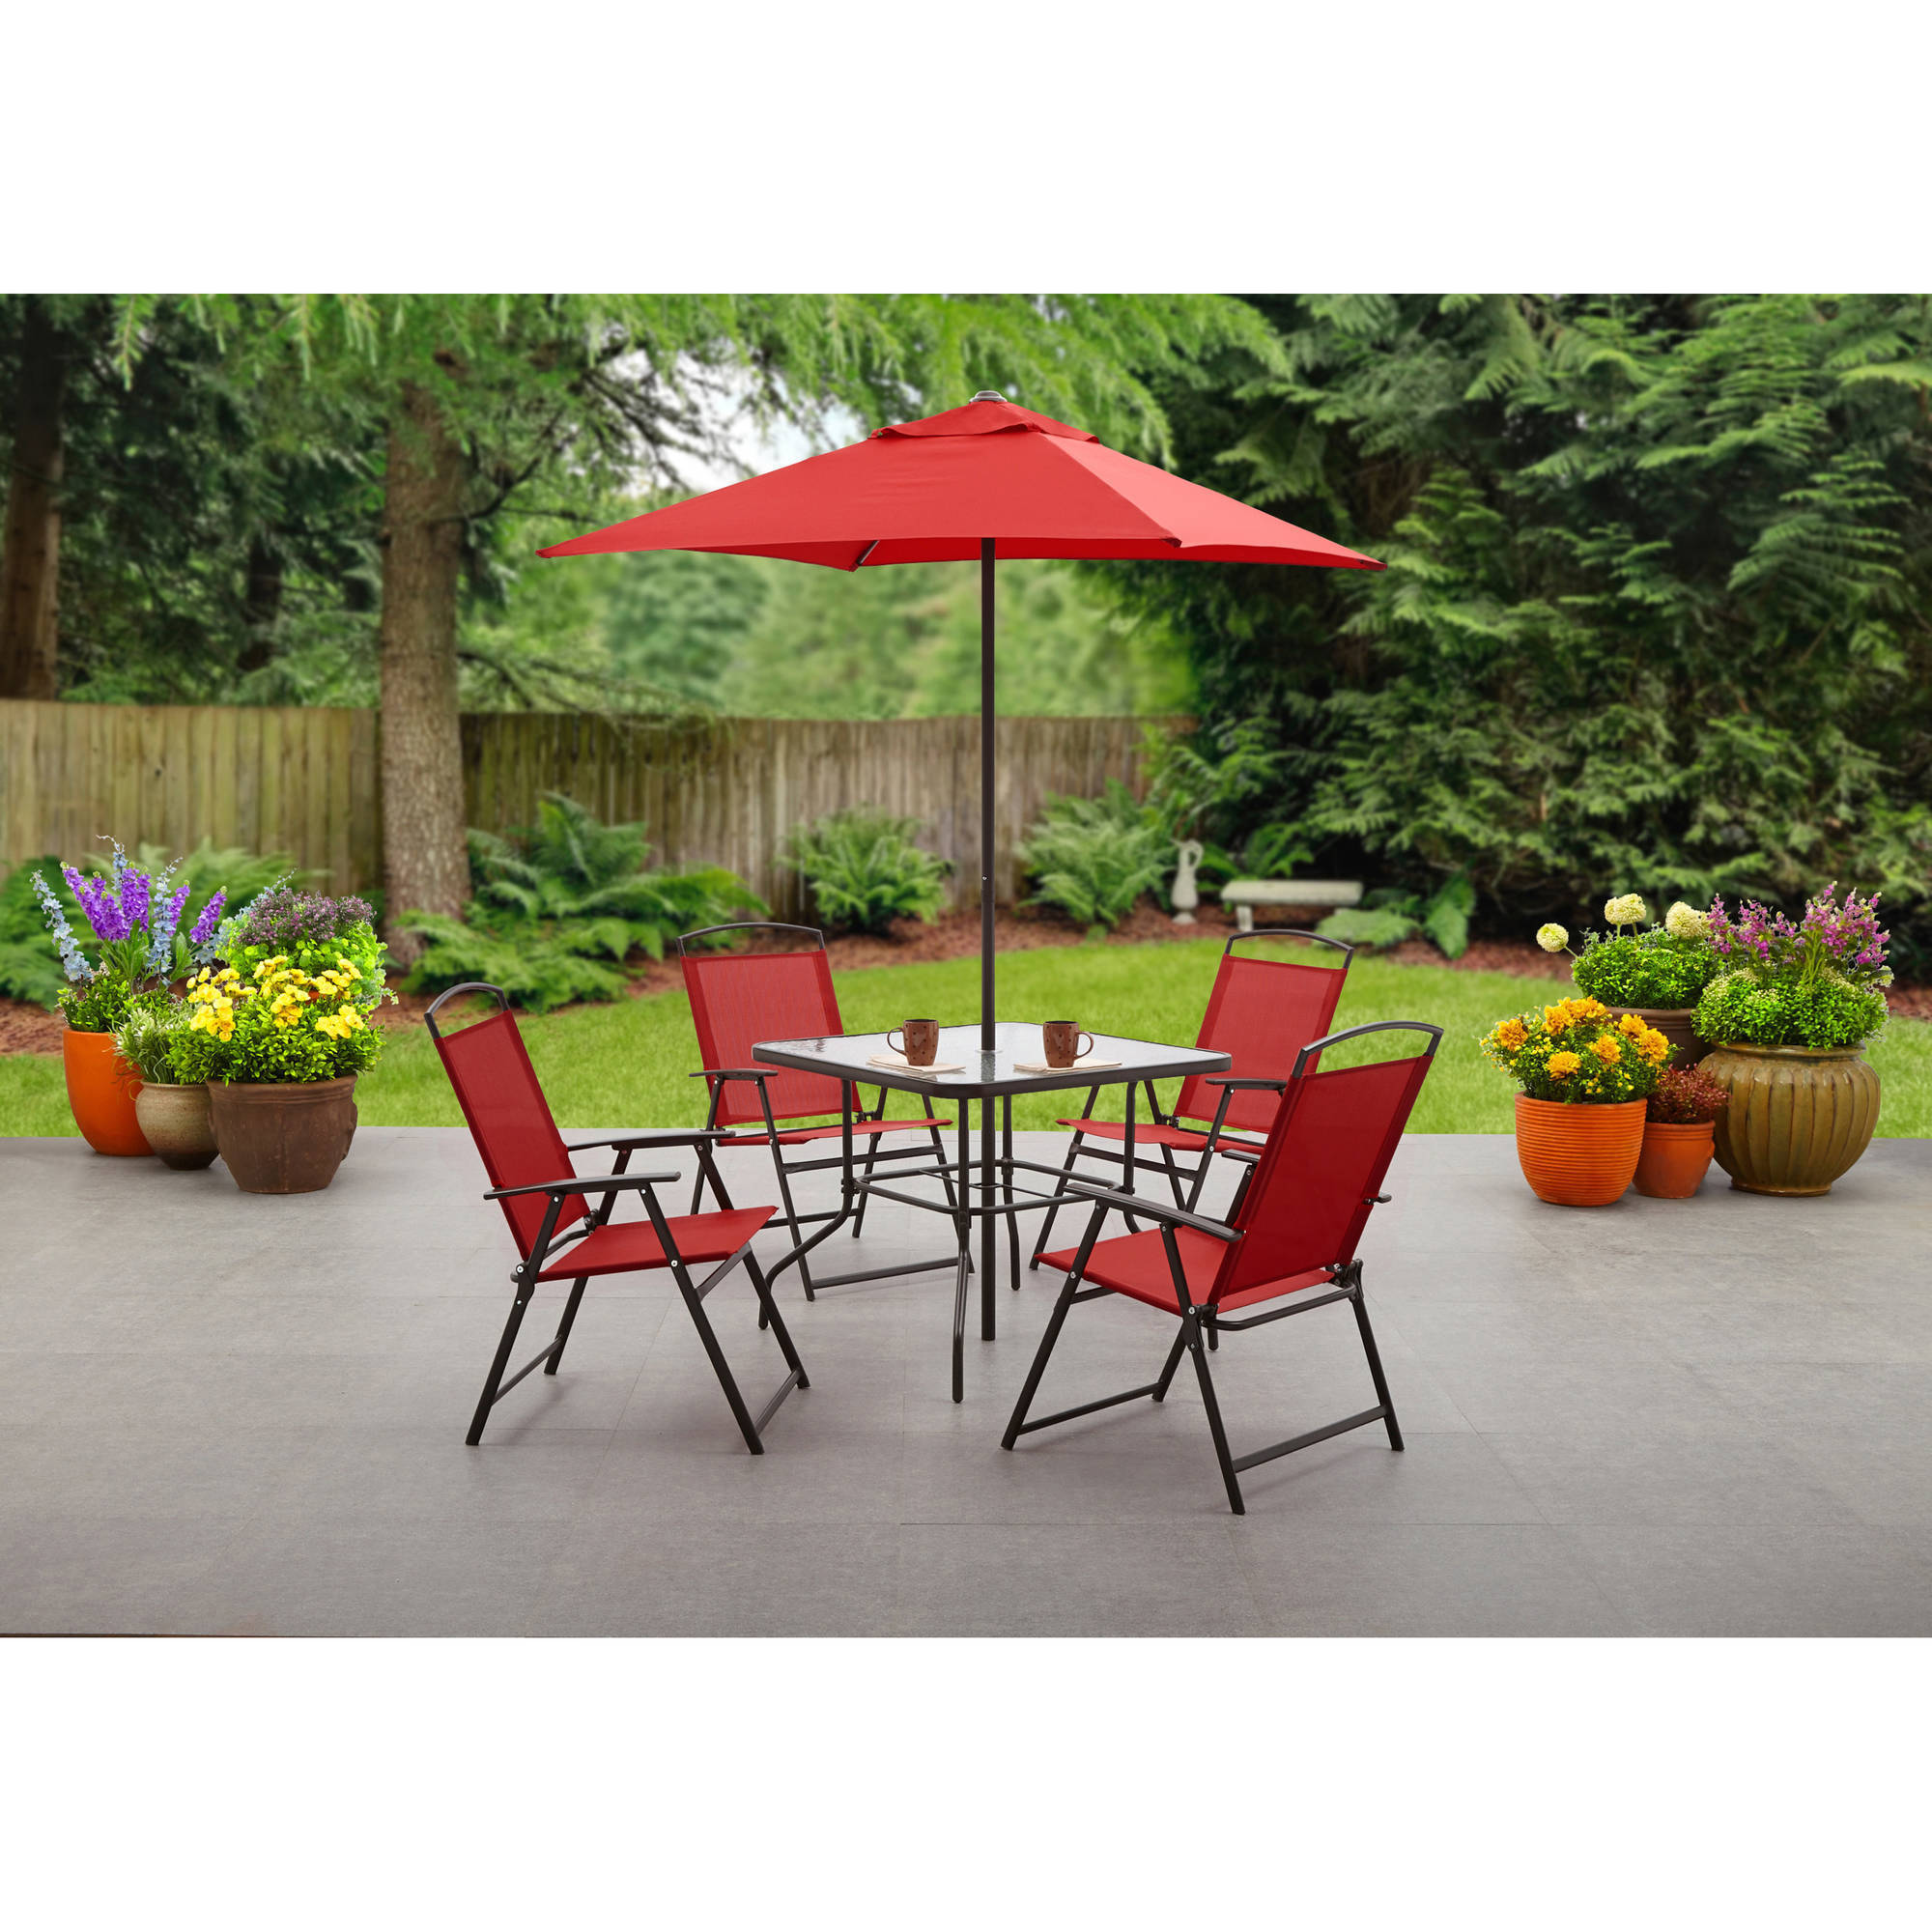 Outdoor Table And Chair Set Mainstays Albany Lane 6 Piece Folding Dining Set Multiple Colors